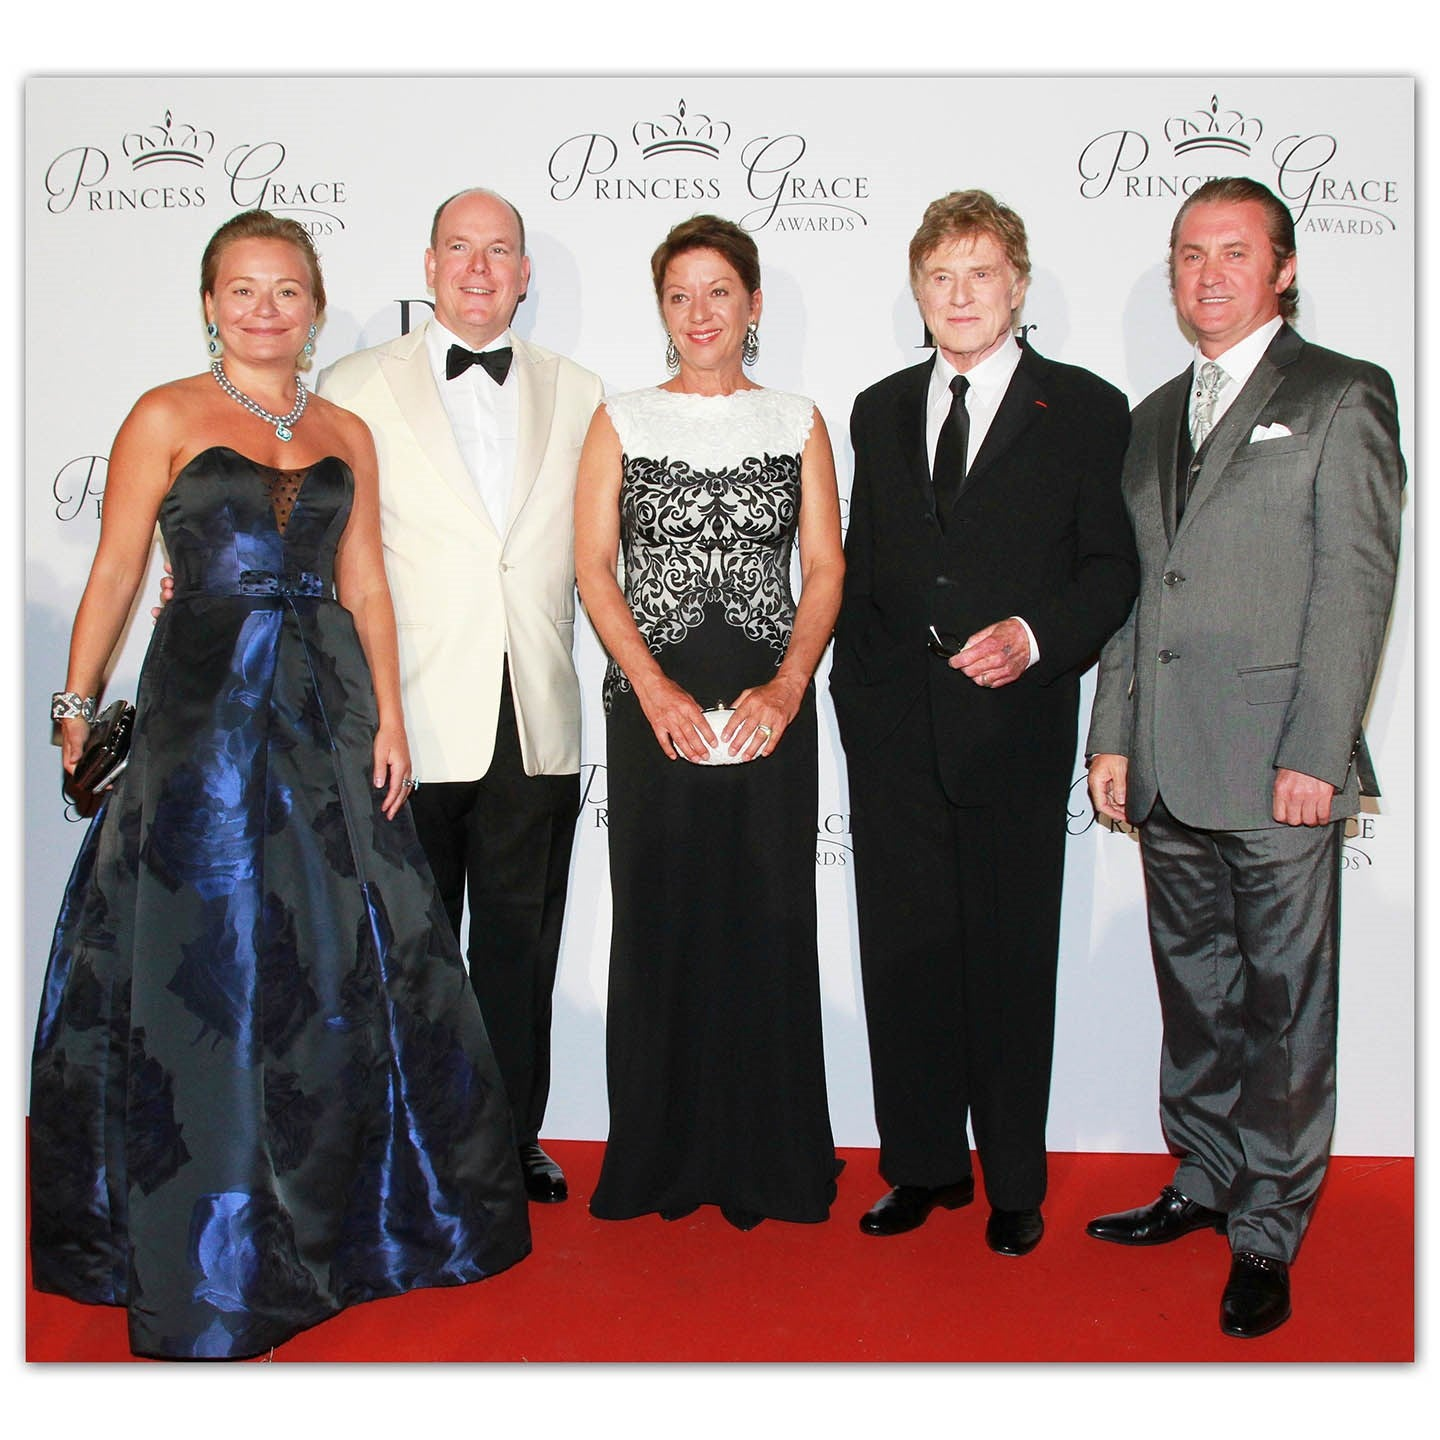 L-R: Maria Soldier, HSH Prince Albert II of Monaco, Sibylle and Robert Redford, Alex Soldier. Jewelry: Alex Soldier. Dress: Alex Teih.